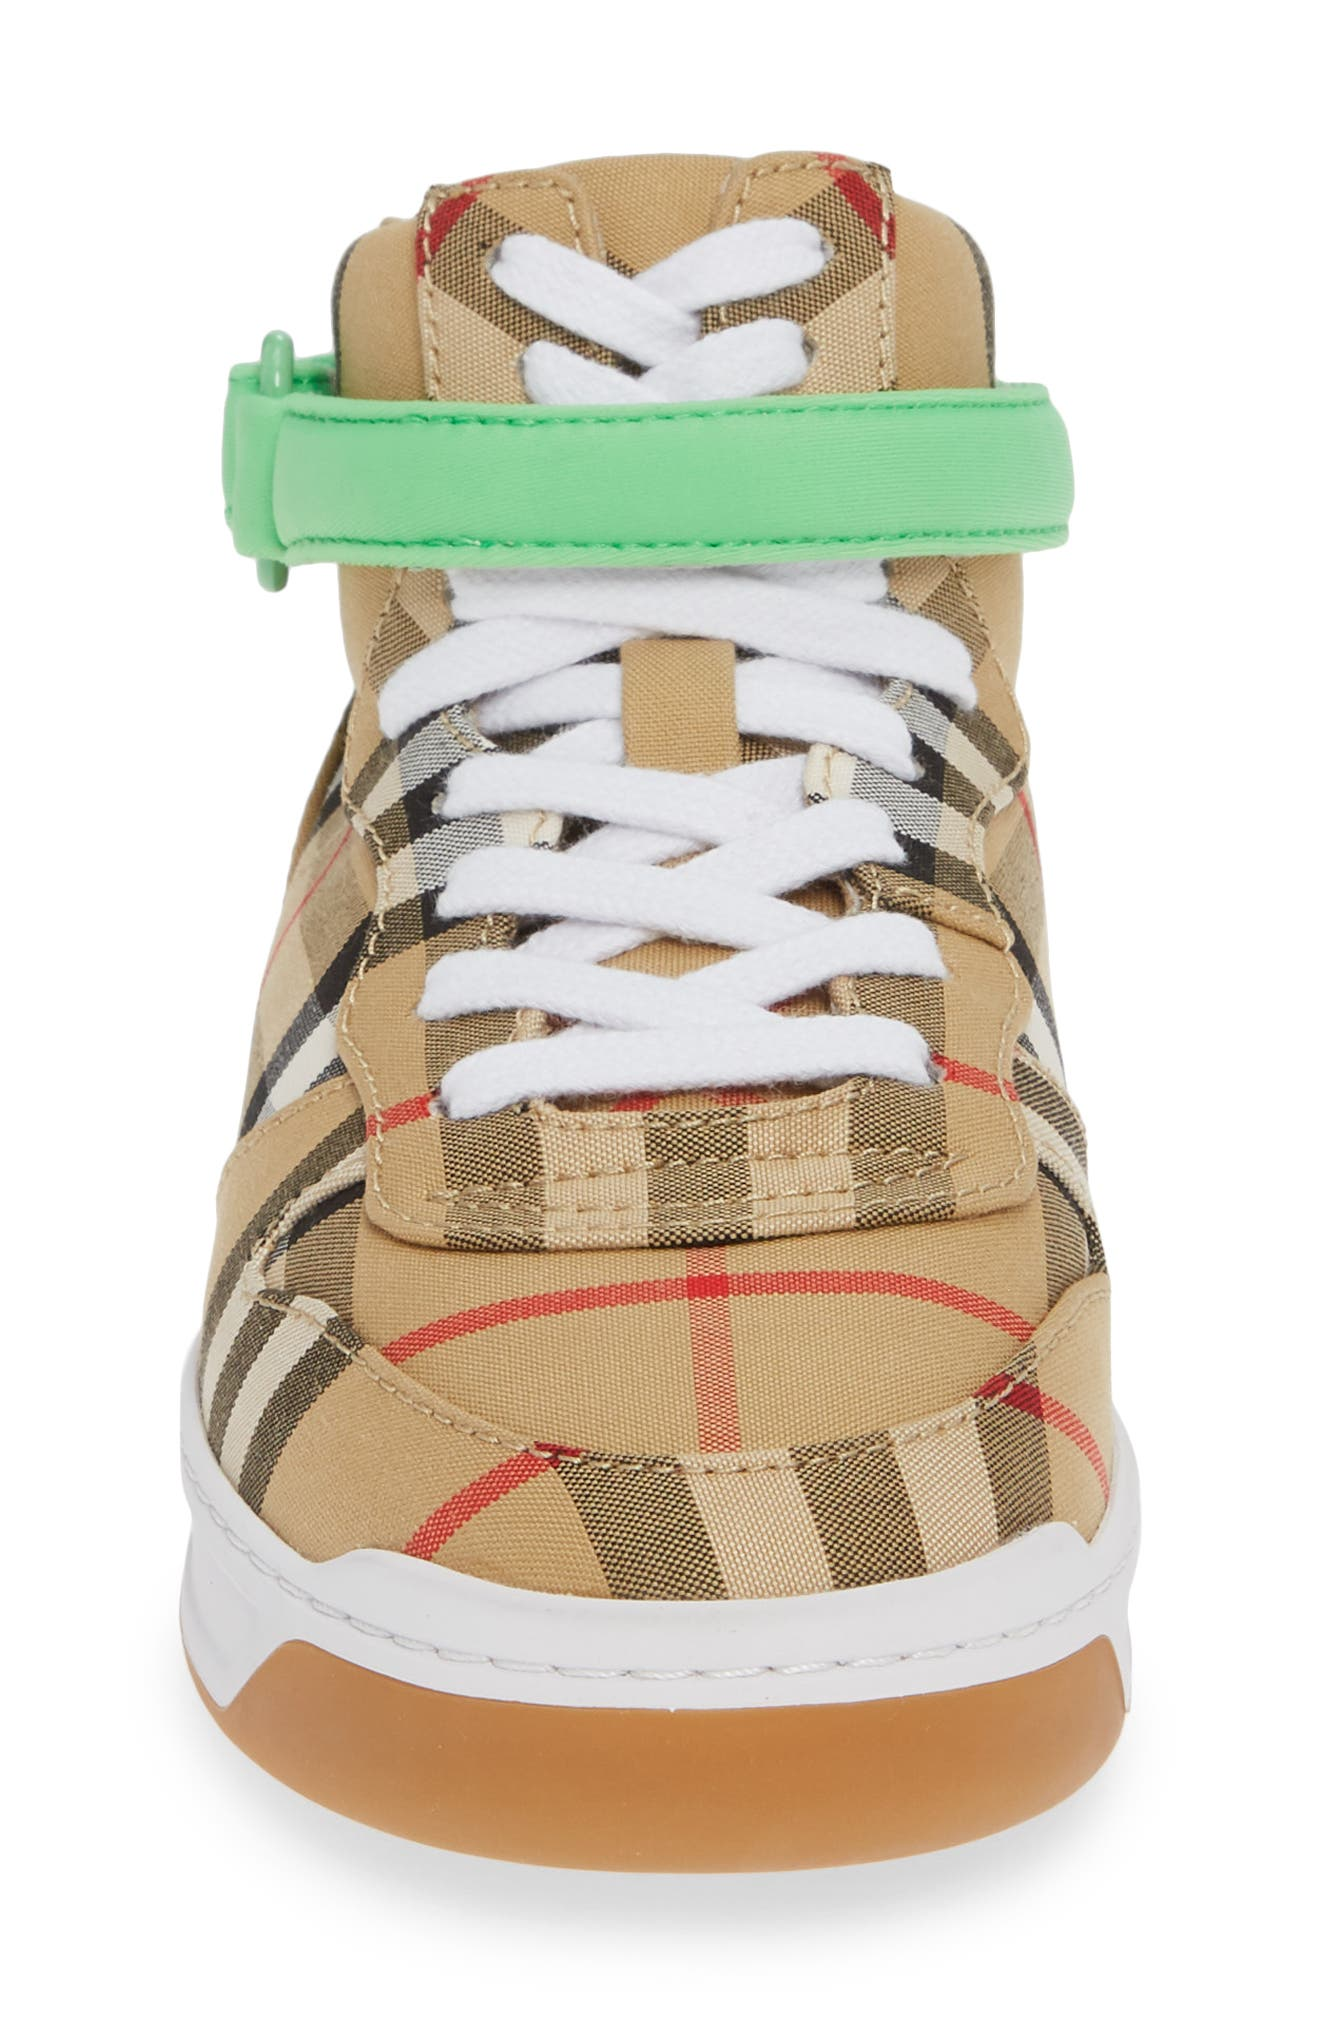 Groves High Top Sneaker,                             Alternate thumbnail 4, color,                             NEON GREEN